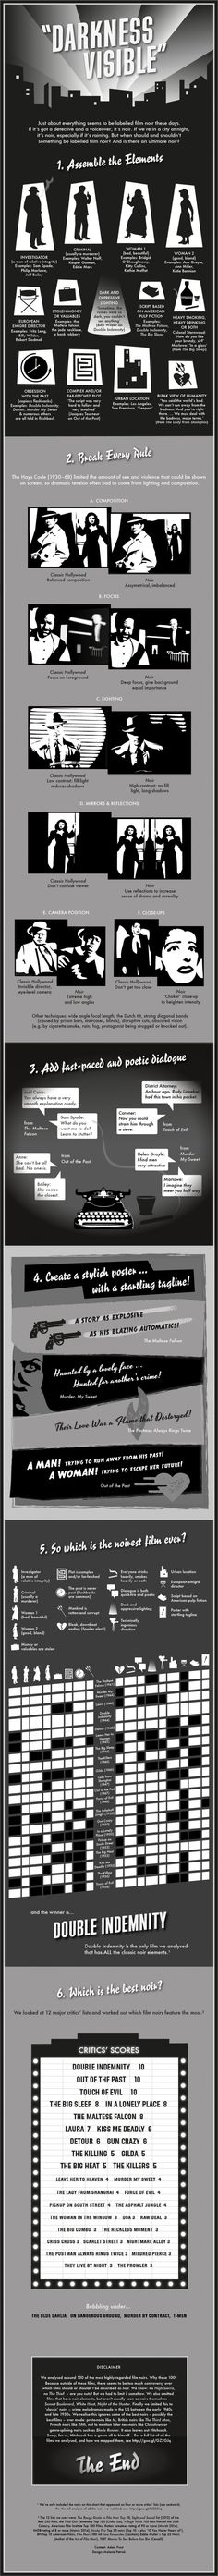 The Stylistic Elements of Film Noir, Explained In One Handy Infographic